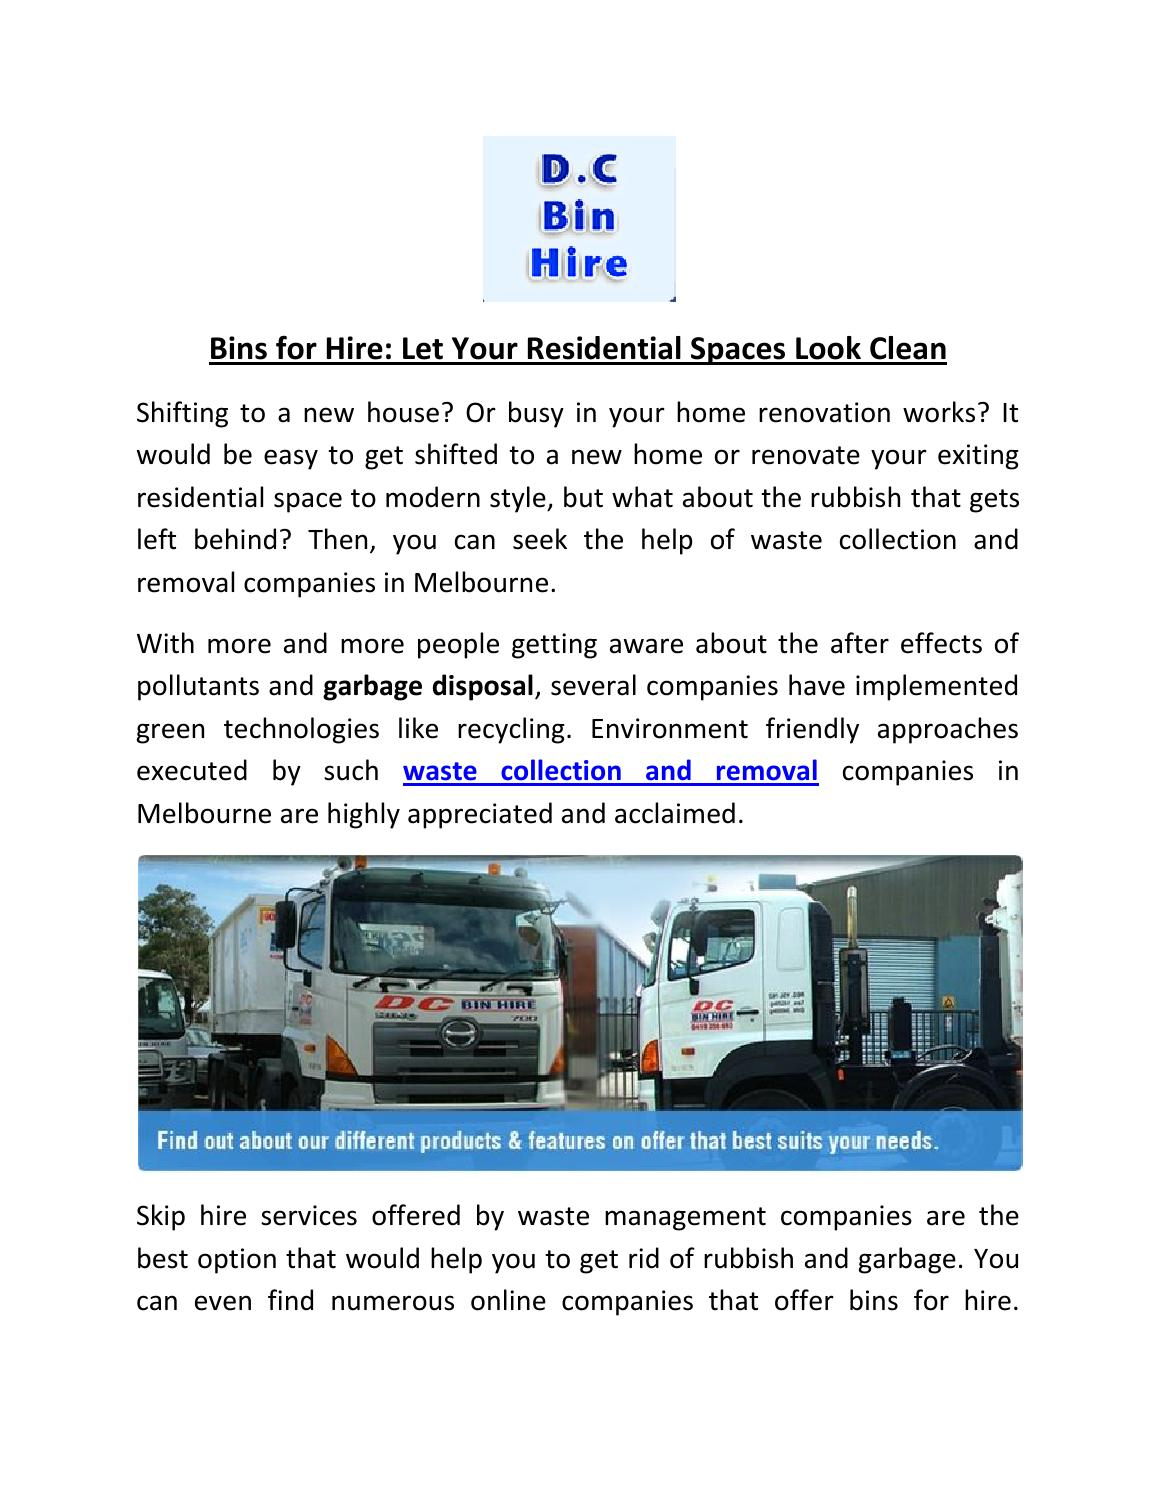 Hiring the services of reliable skip hire companies by waste